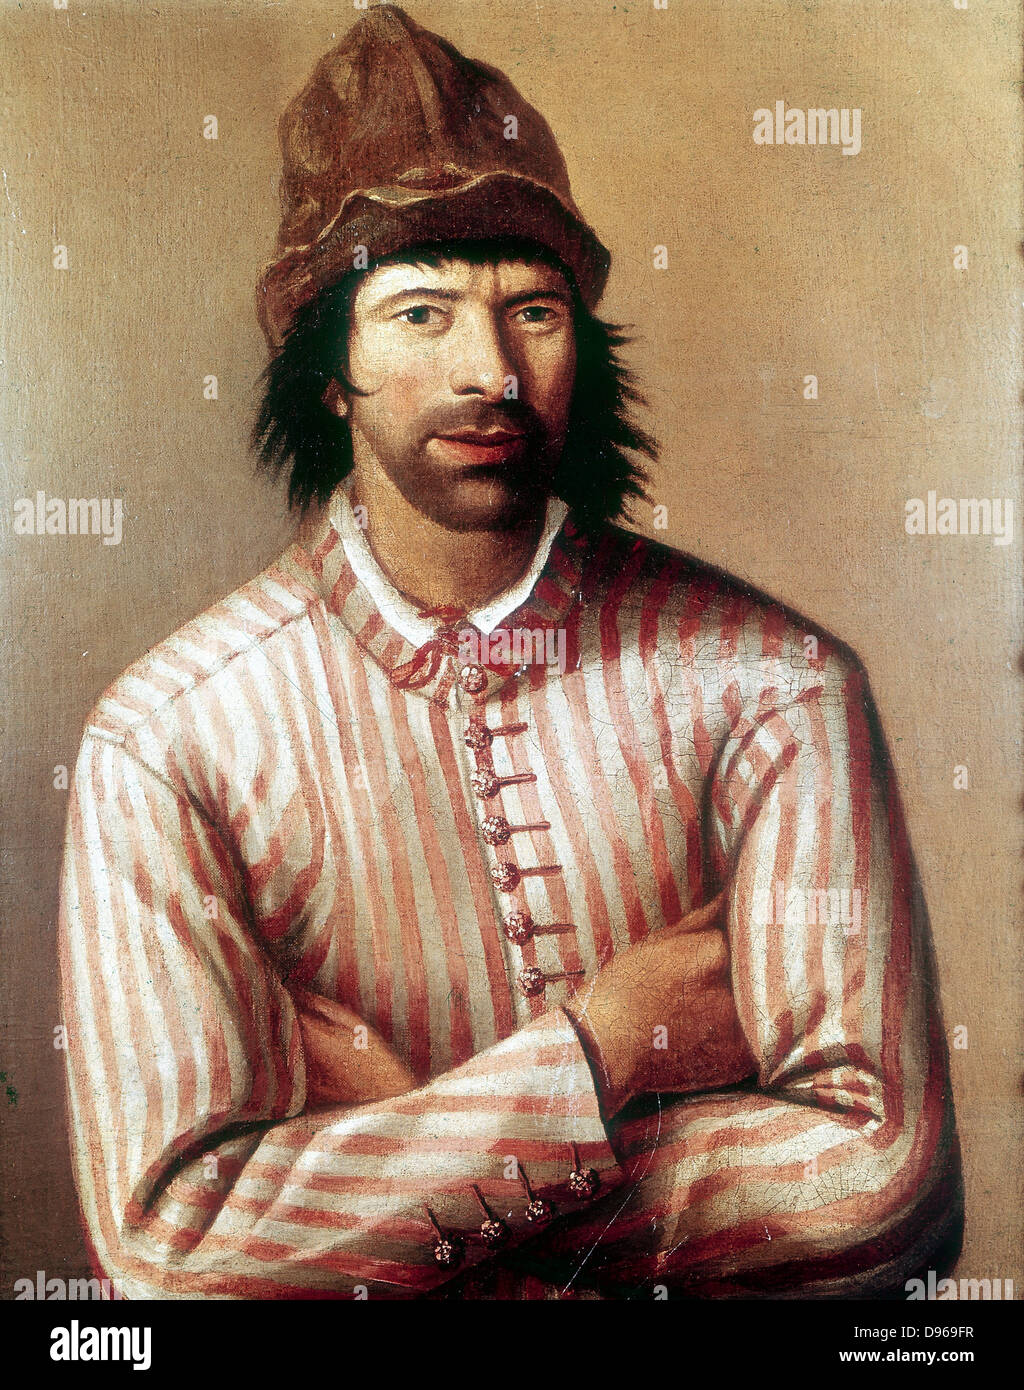 Peter I, the Great (1672-1725) Tsar of Russia from 1682, here dressed as a ship's carpenter's apprentice - Stock Image